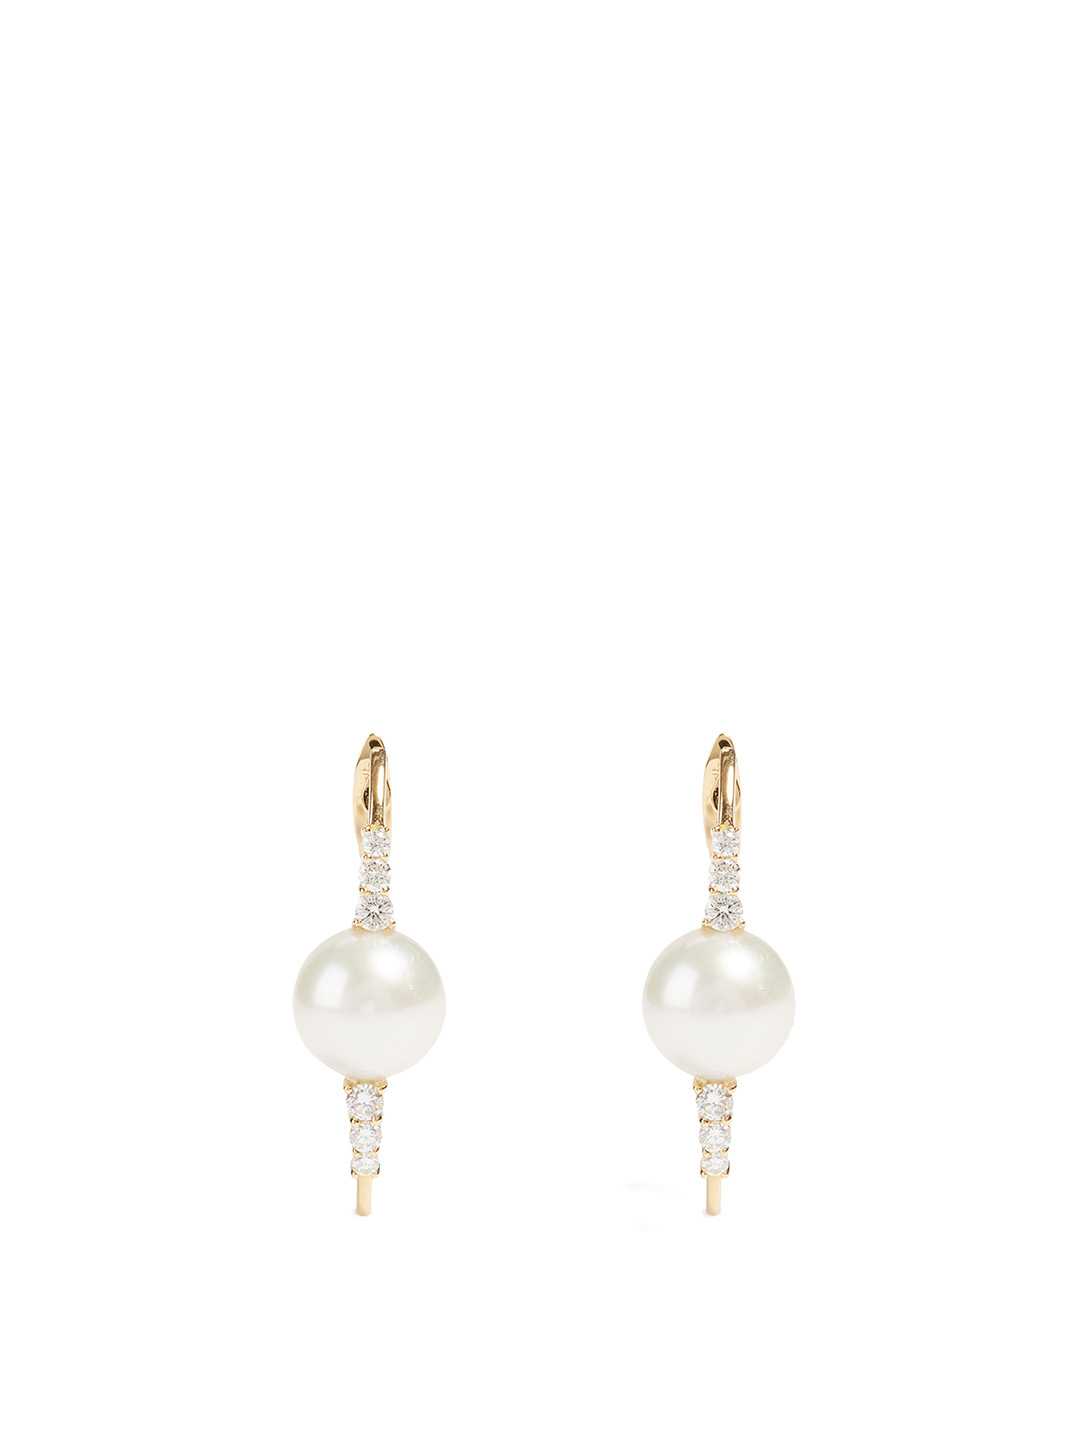 HUEB Spectrum 18K Gold Earrings With Diamonds And Pearls Women's Metallic